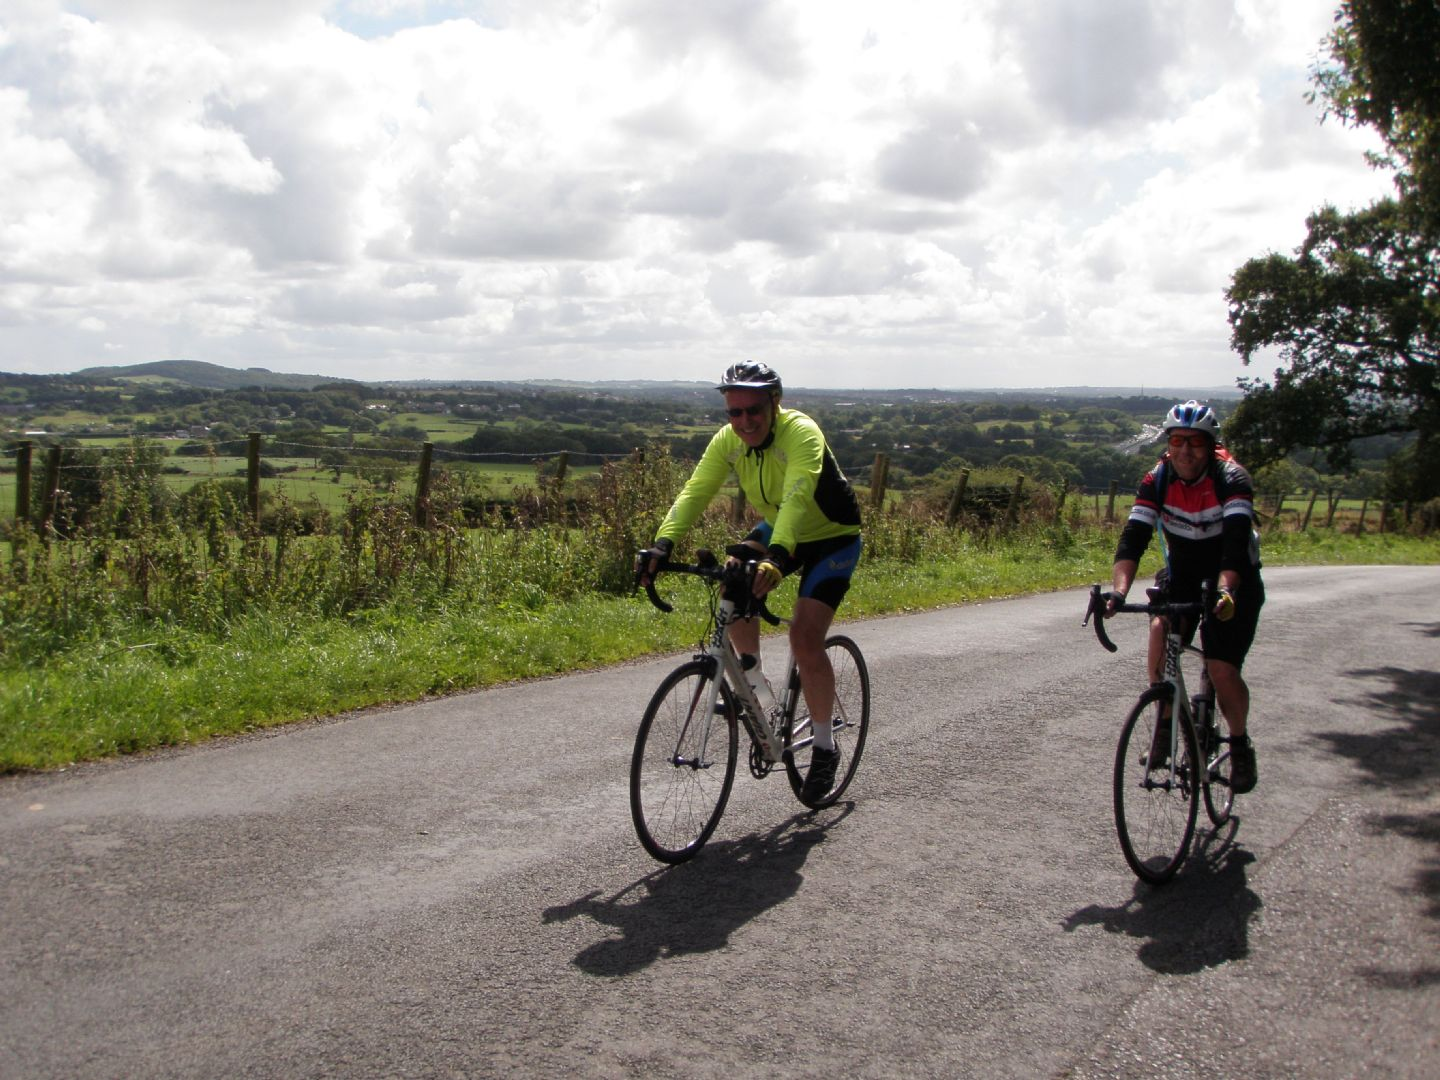 _Customer.103148.20049.jpg - UK - Land's End to John O'Groats Classic (16 days) - Guided Road Cycling Holiday - Road Cycling